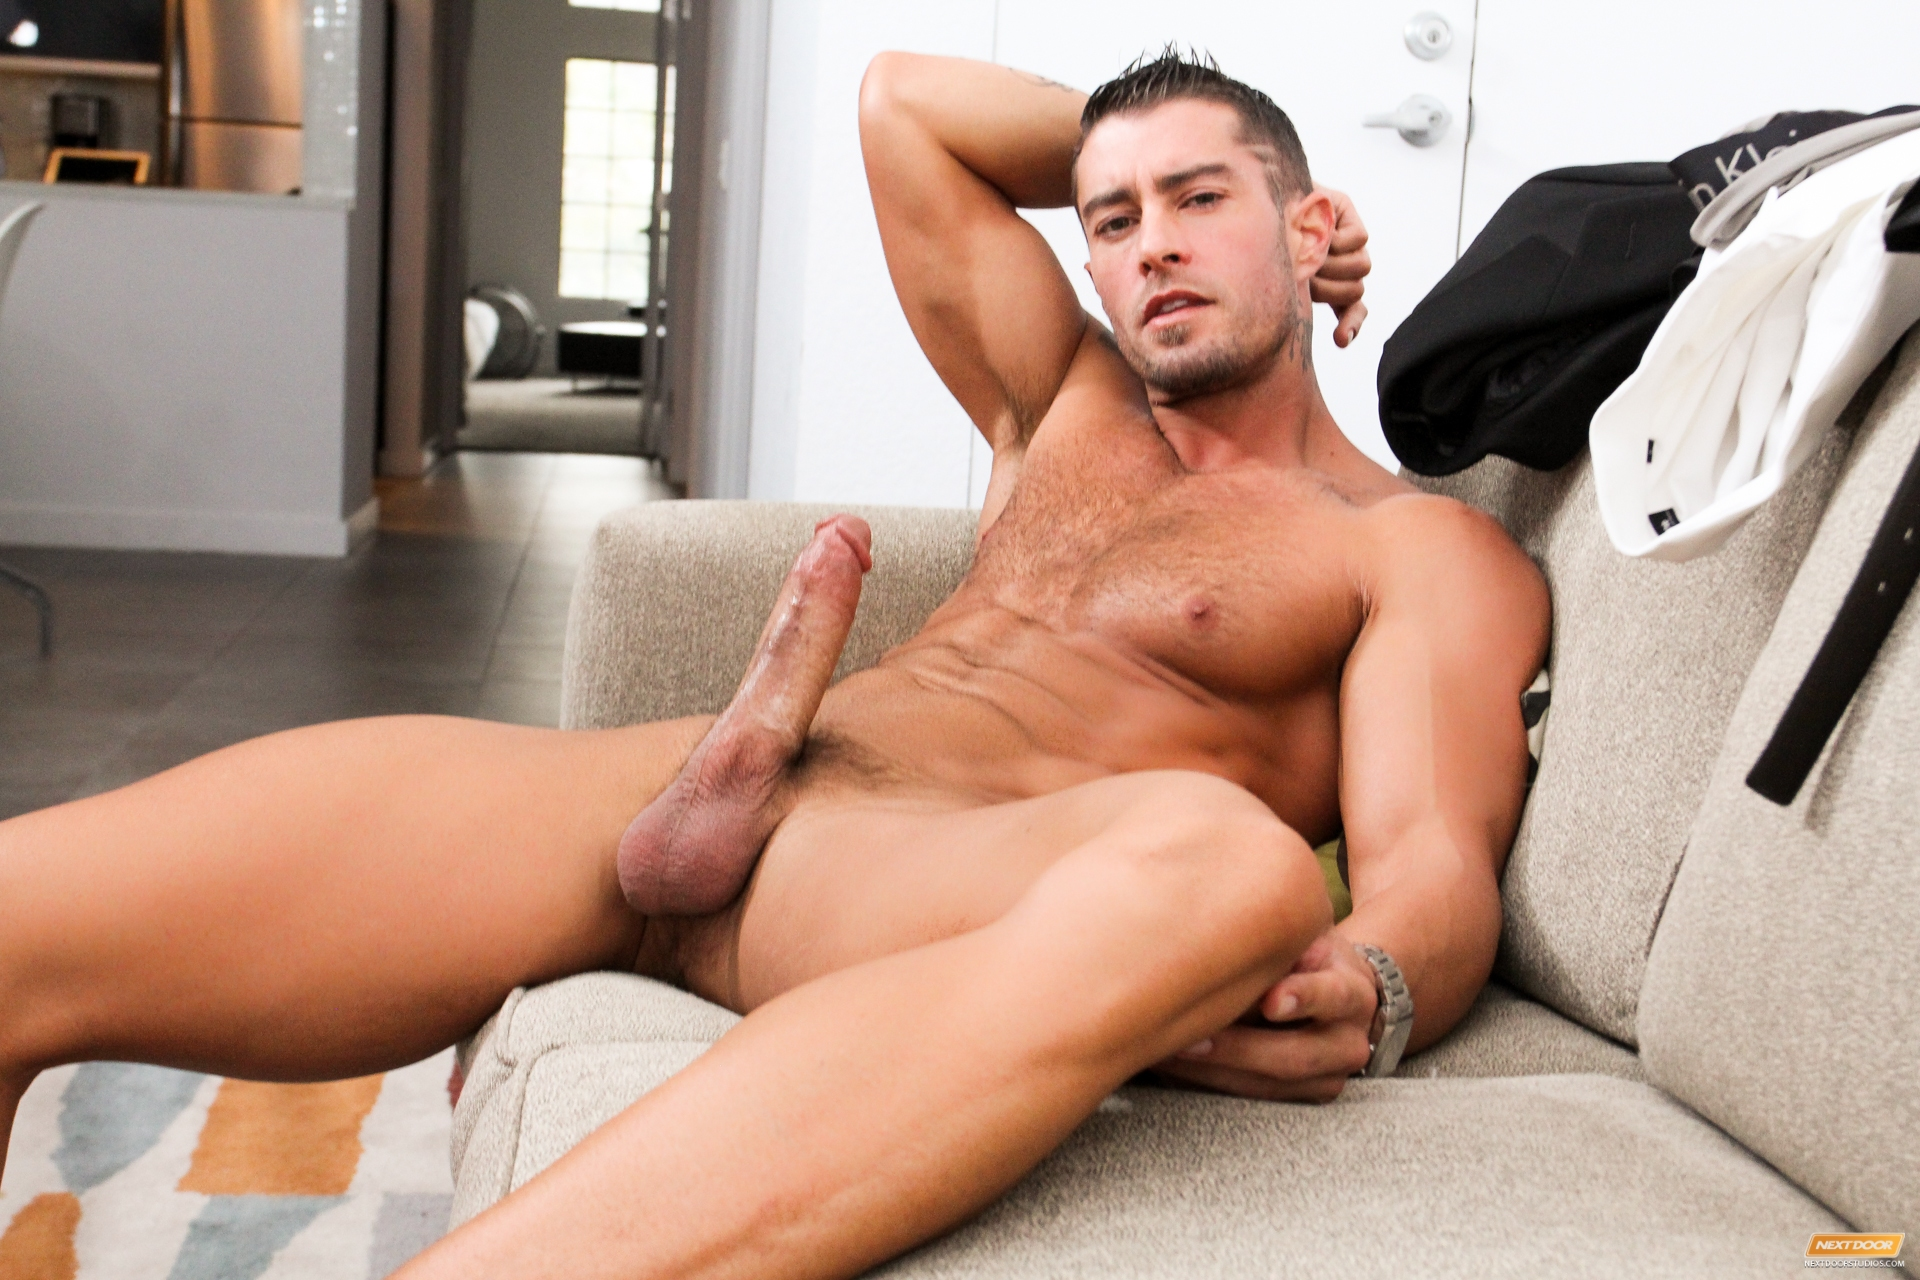 guy with big dick naked gay